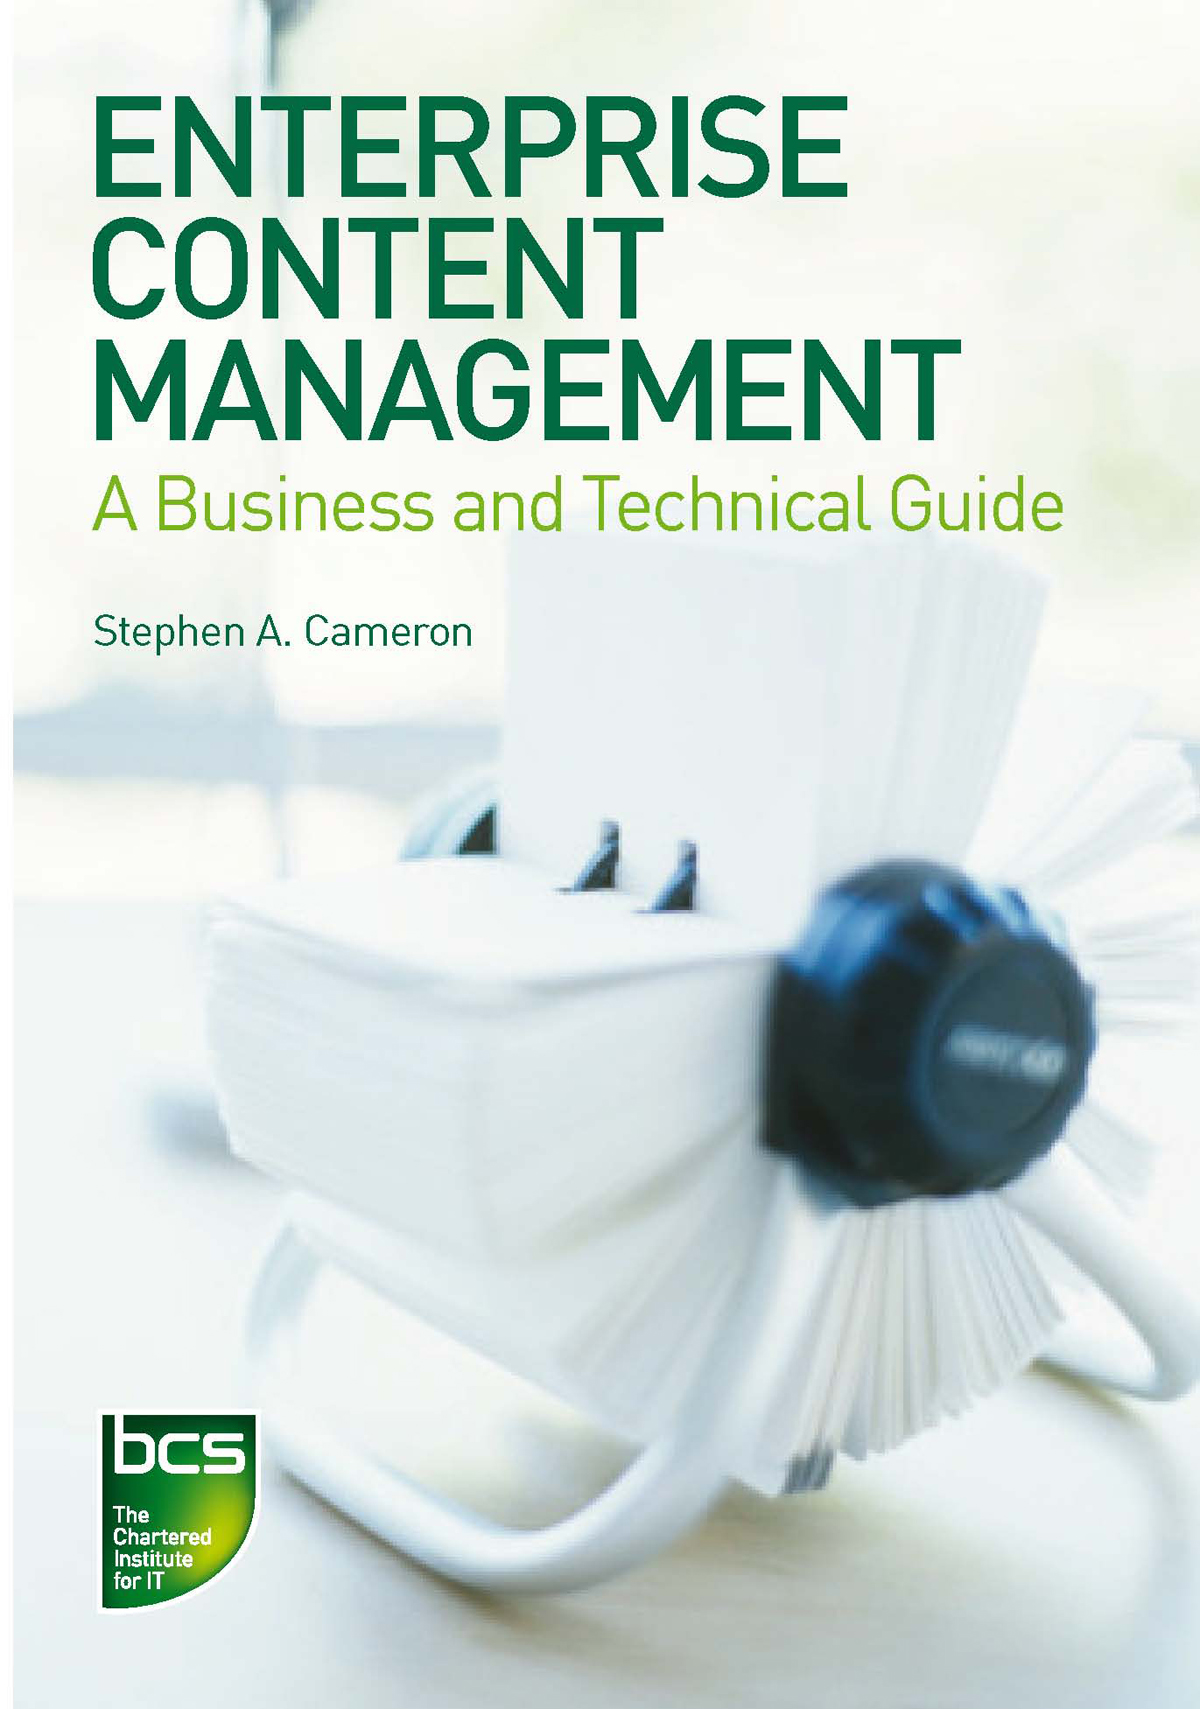 Enterprise Content Management A Business and Technical Guide